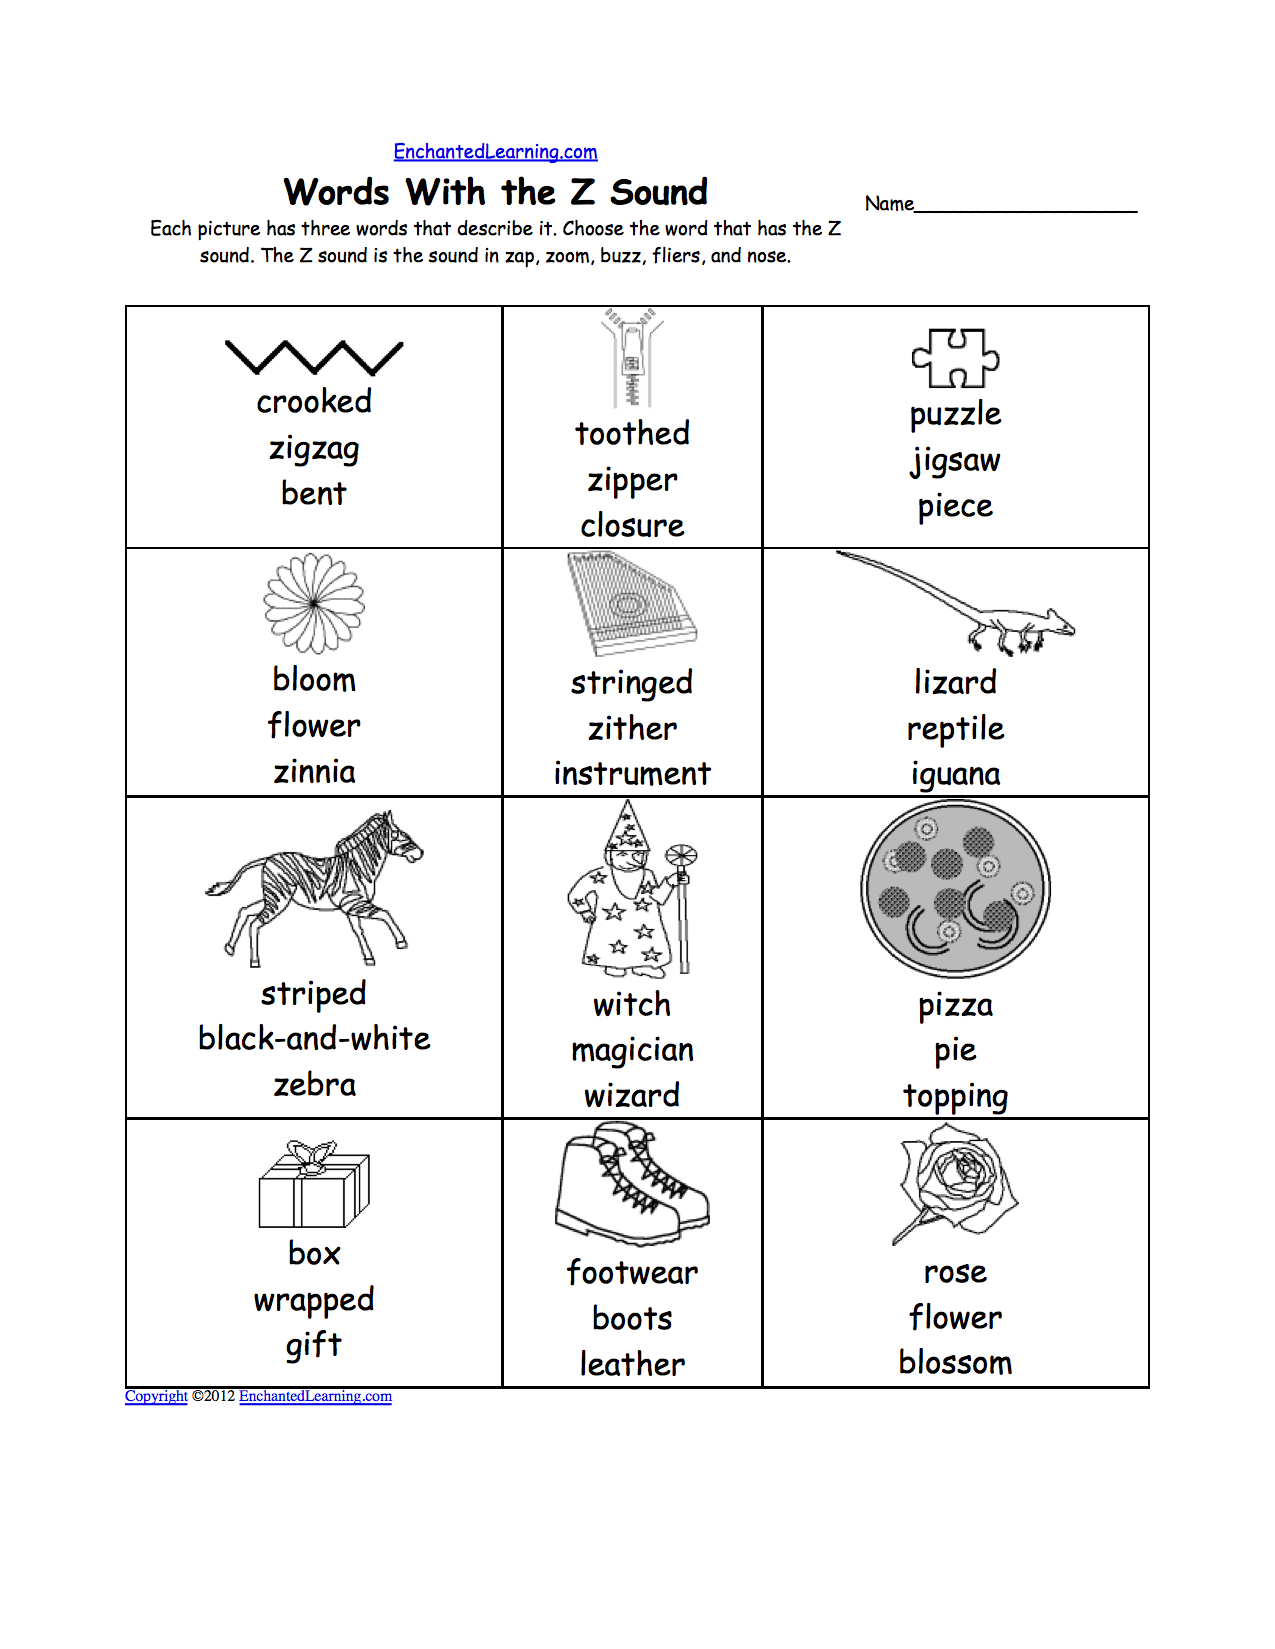 Aldiablosus  Mesmerizing Phonics Worksheets Multiple Choice Worksheets To Print  With Entrancing Phonics Worksheets Multiple Choice Worksheets To Print  Enchantedlearningcom With Attractive Parallel Perpendicular And Intersecting Lines Worksheet Also Three Dimensional Shapes Worksheets In Addition Cut And Paste Worksheets For First Grade And Civil War Timeline Worksheet As Well As Chicken Life Cycle Worksheet Additionally Tax Computation Worksheet  From Enchantedlearningcom With Aldiablosus  Entrancing Phonics Worksheets Multiple Choice Worksheets To Print  With Attractive Phonics Worksheets Multiple Choice Worksheets To Print  Enchantedlearningcom And Mesmerizing Parallel Perpendicular And Intersecting Lines Worksheet Also Three Dimensional Shapes Worksheets In Addition Cut And Paste Worksheets For First Grade From Enchantedlearningcom